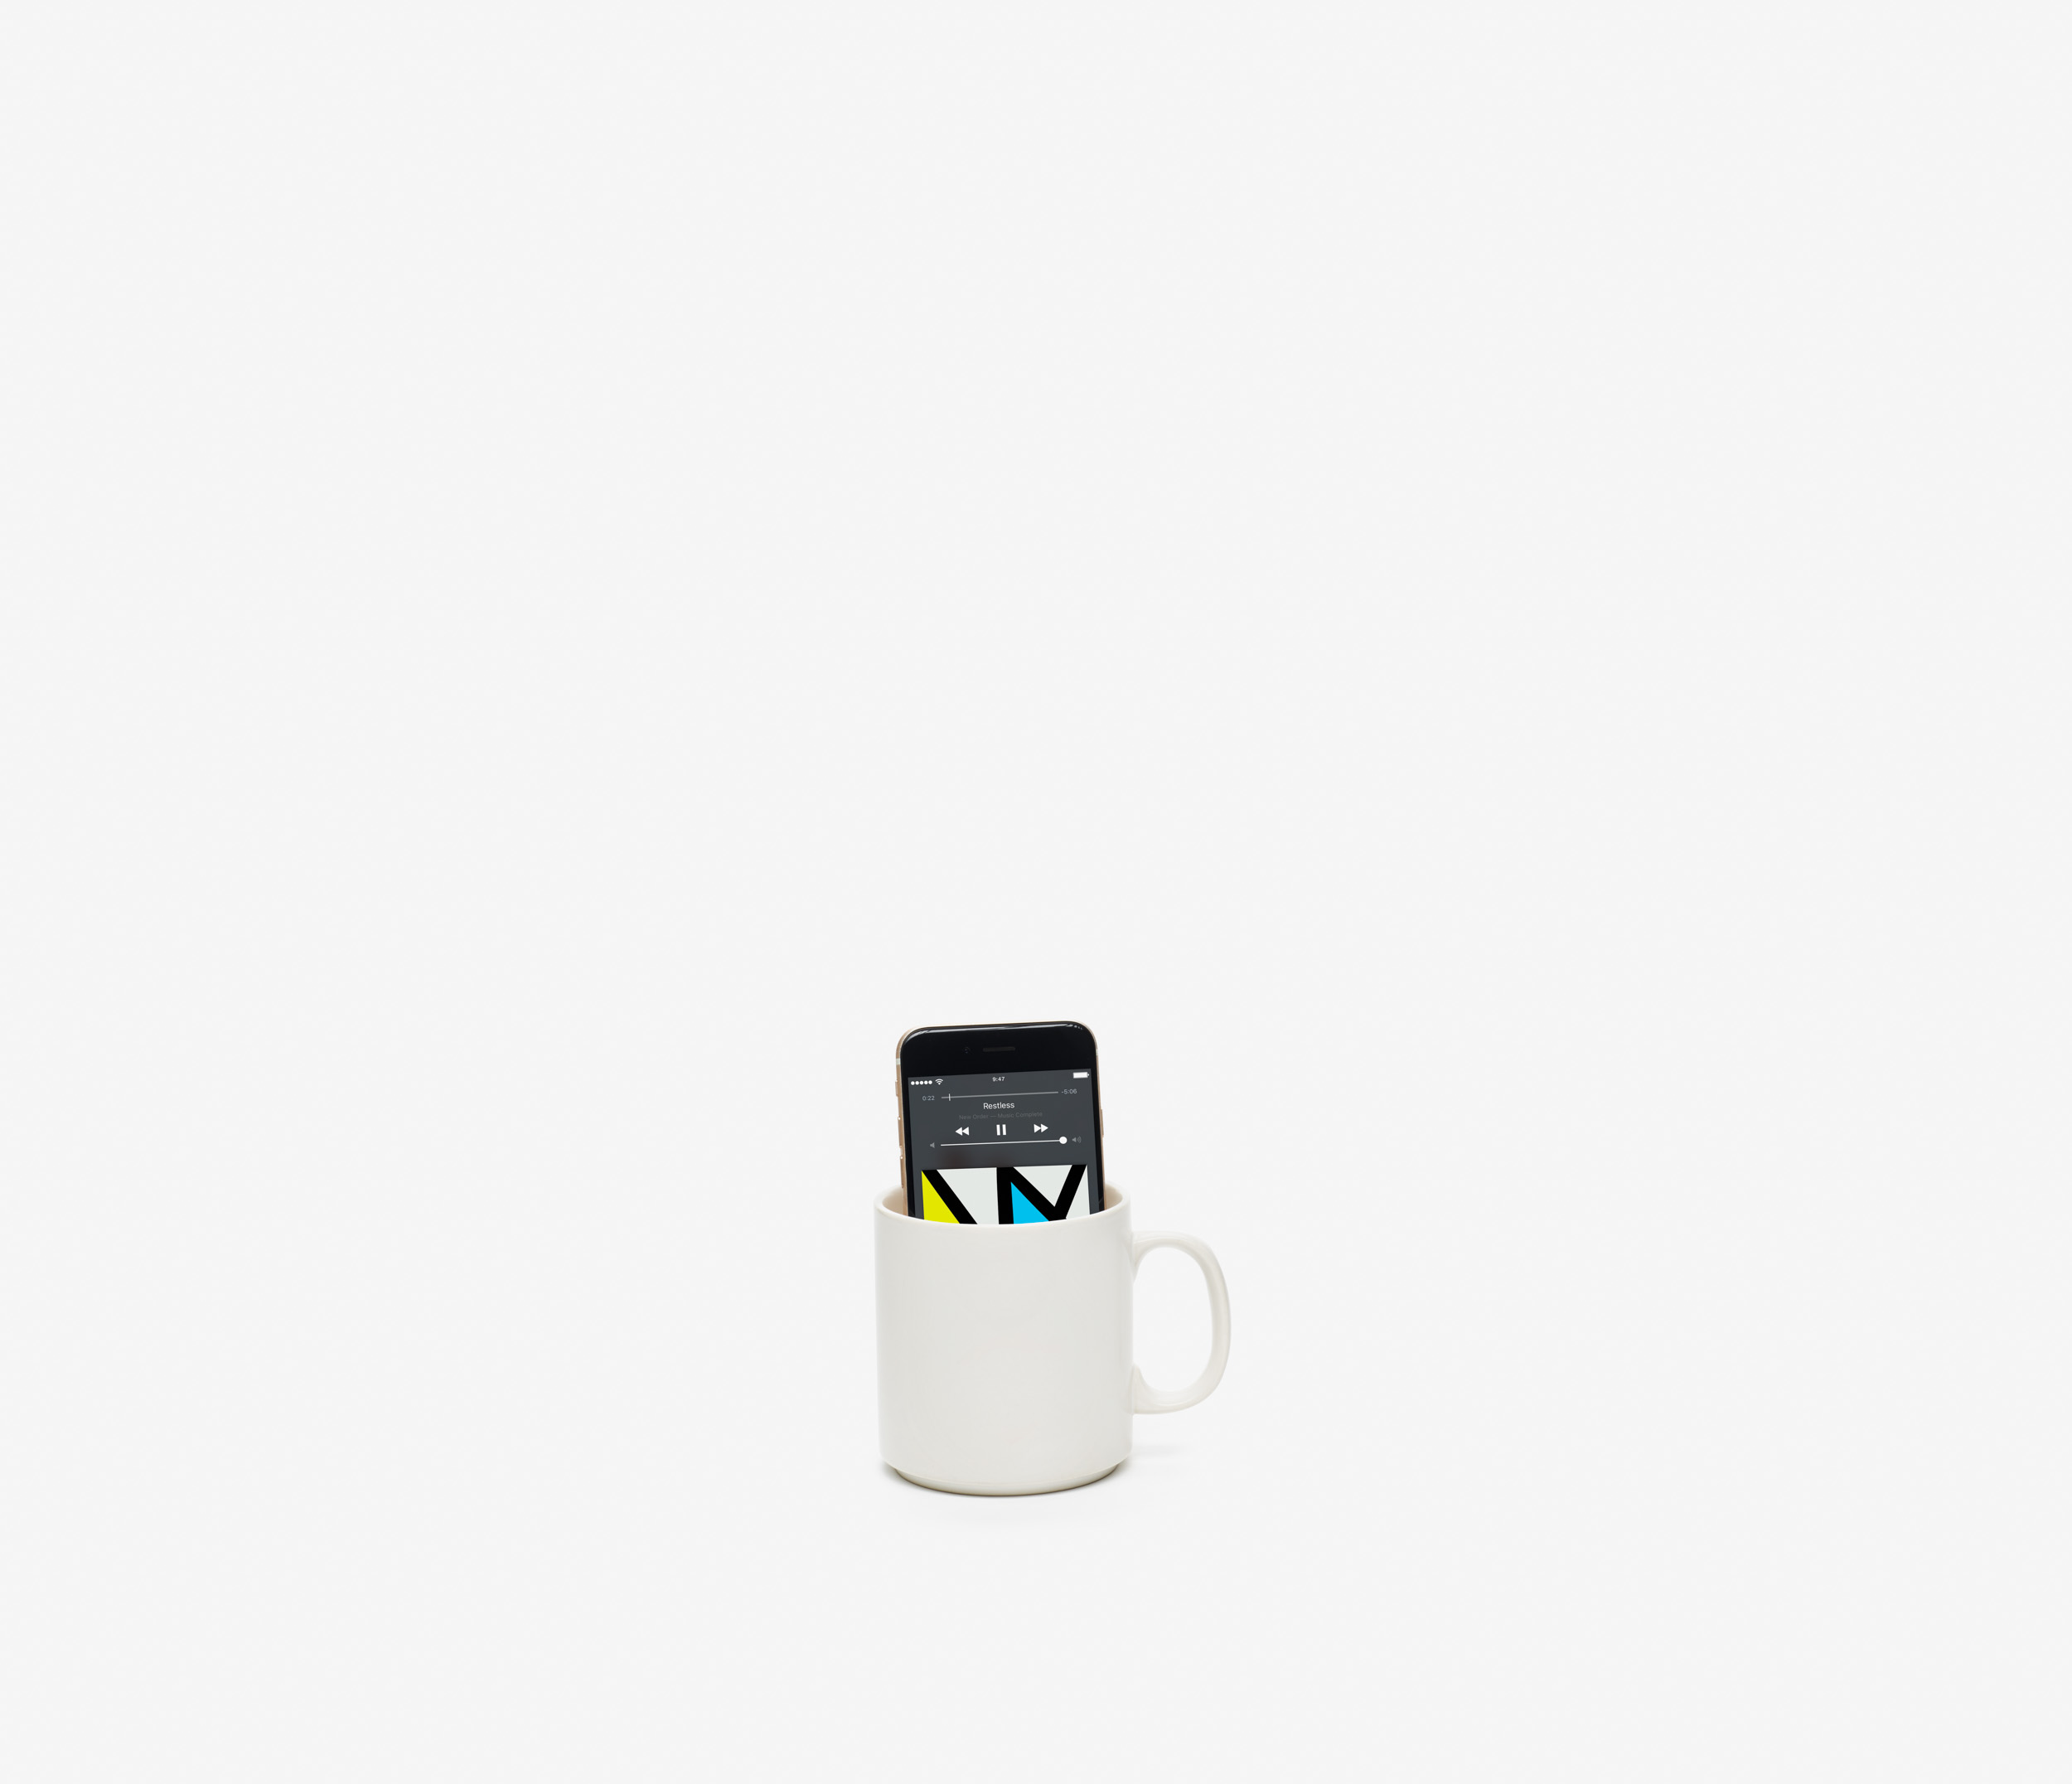 """Listening Fail #14 """"Mug o' Bass"""" Sonos delivers a pure sonic punch––high, low and in-between. No cup required. David Naugle   R&D Studios Inc"""